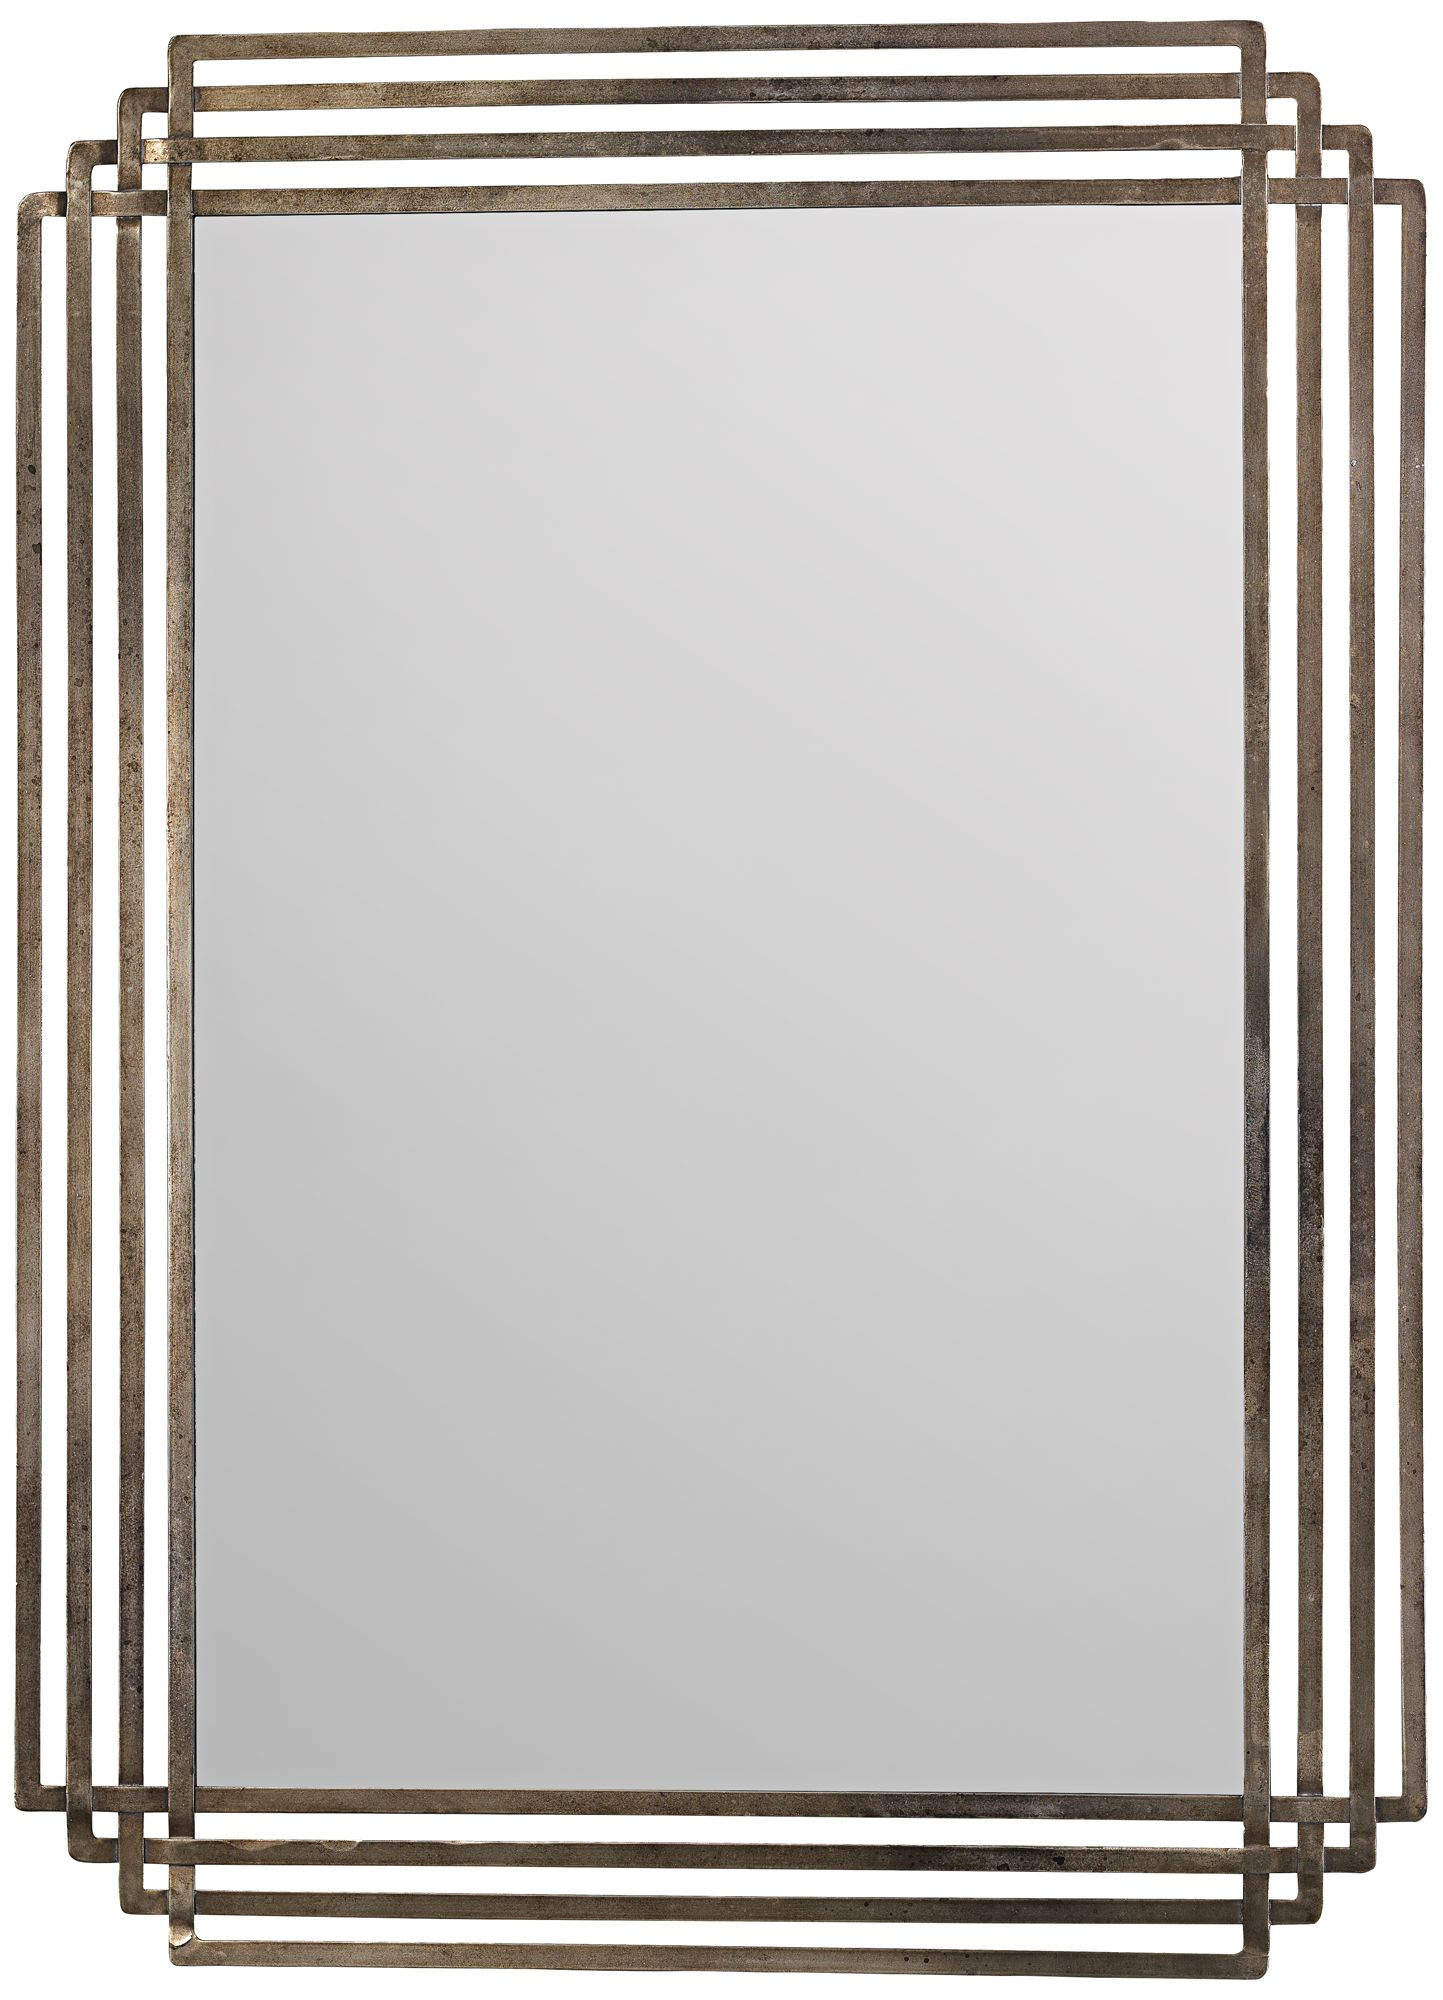 Wall mirrors Living Room Jamie Young Serai Antique Silver 36 The Home Depot Jamie Young Company Wall Mirrors Mirrors Lamps Plus